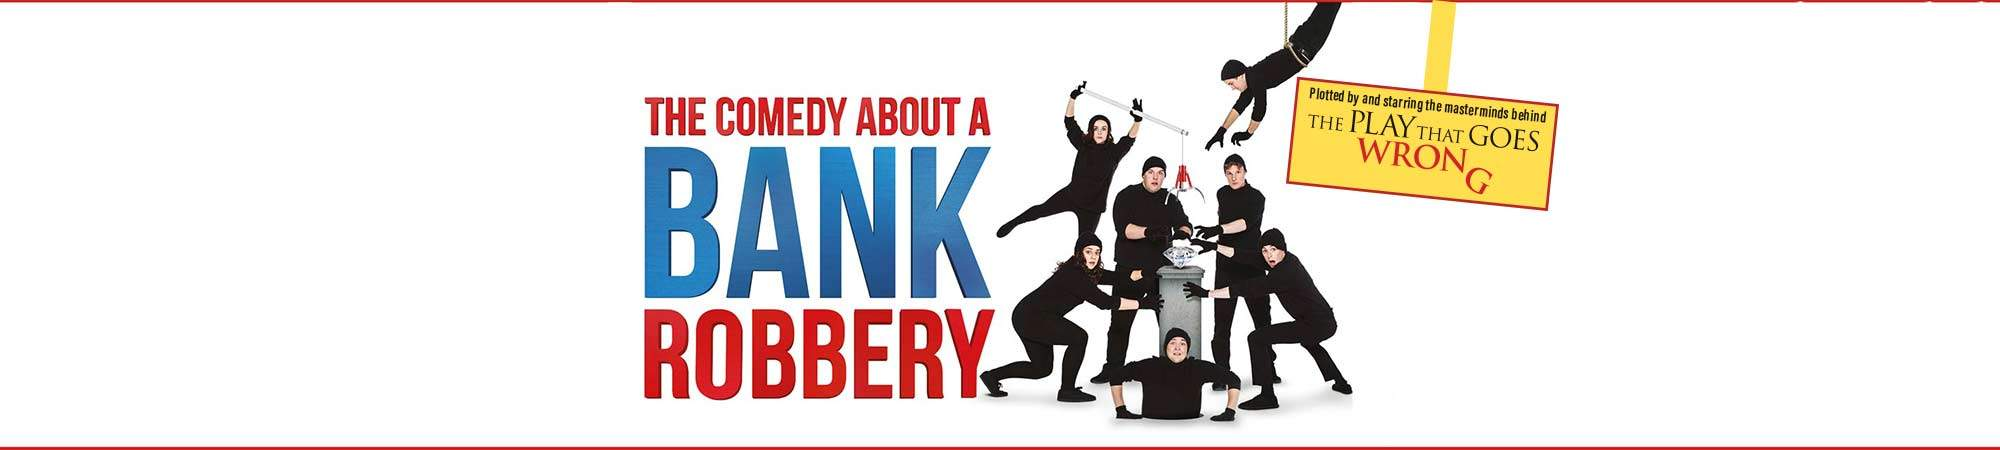 Little Bird The Comedy About A Bank Robbery at the Criterion Theatre